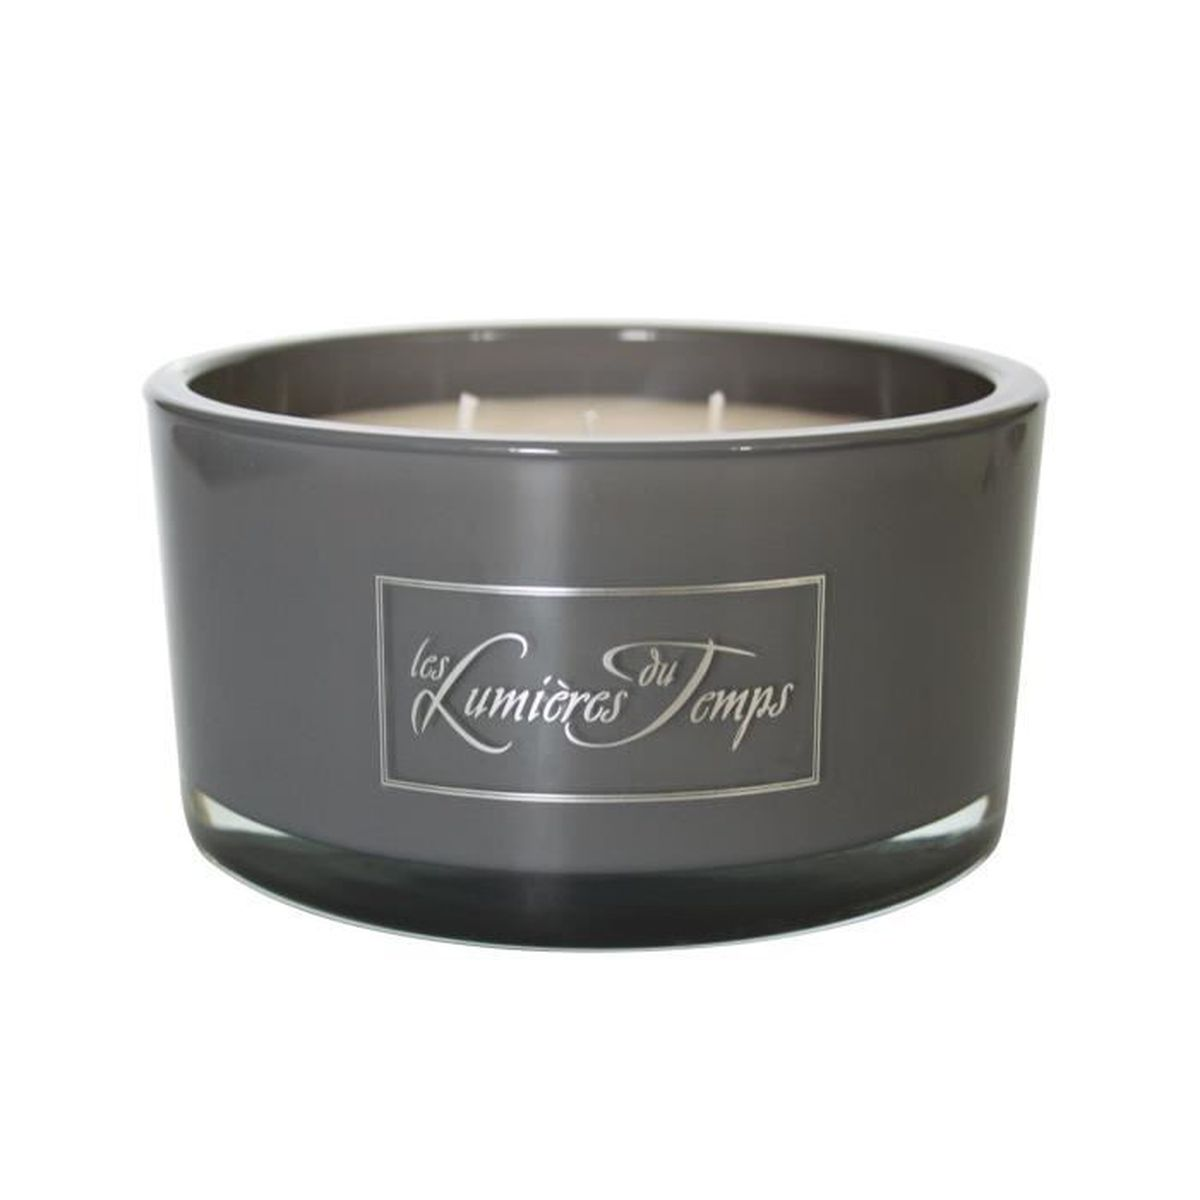 Bougie Luxe Ronde Mm Anthracyte Cachemire Achat Vente Bougie